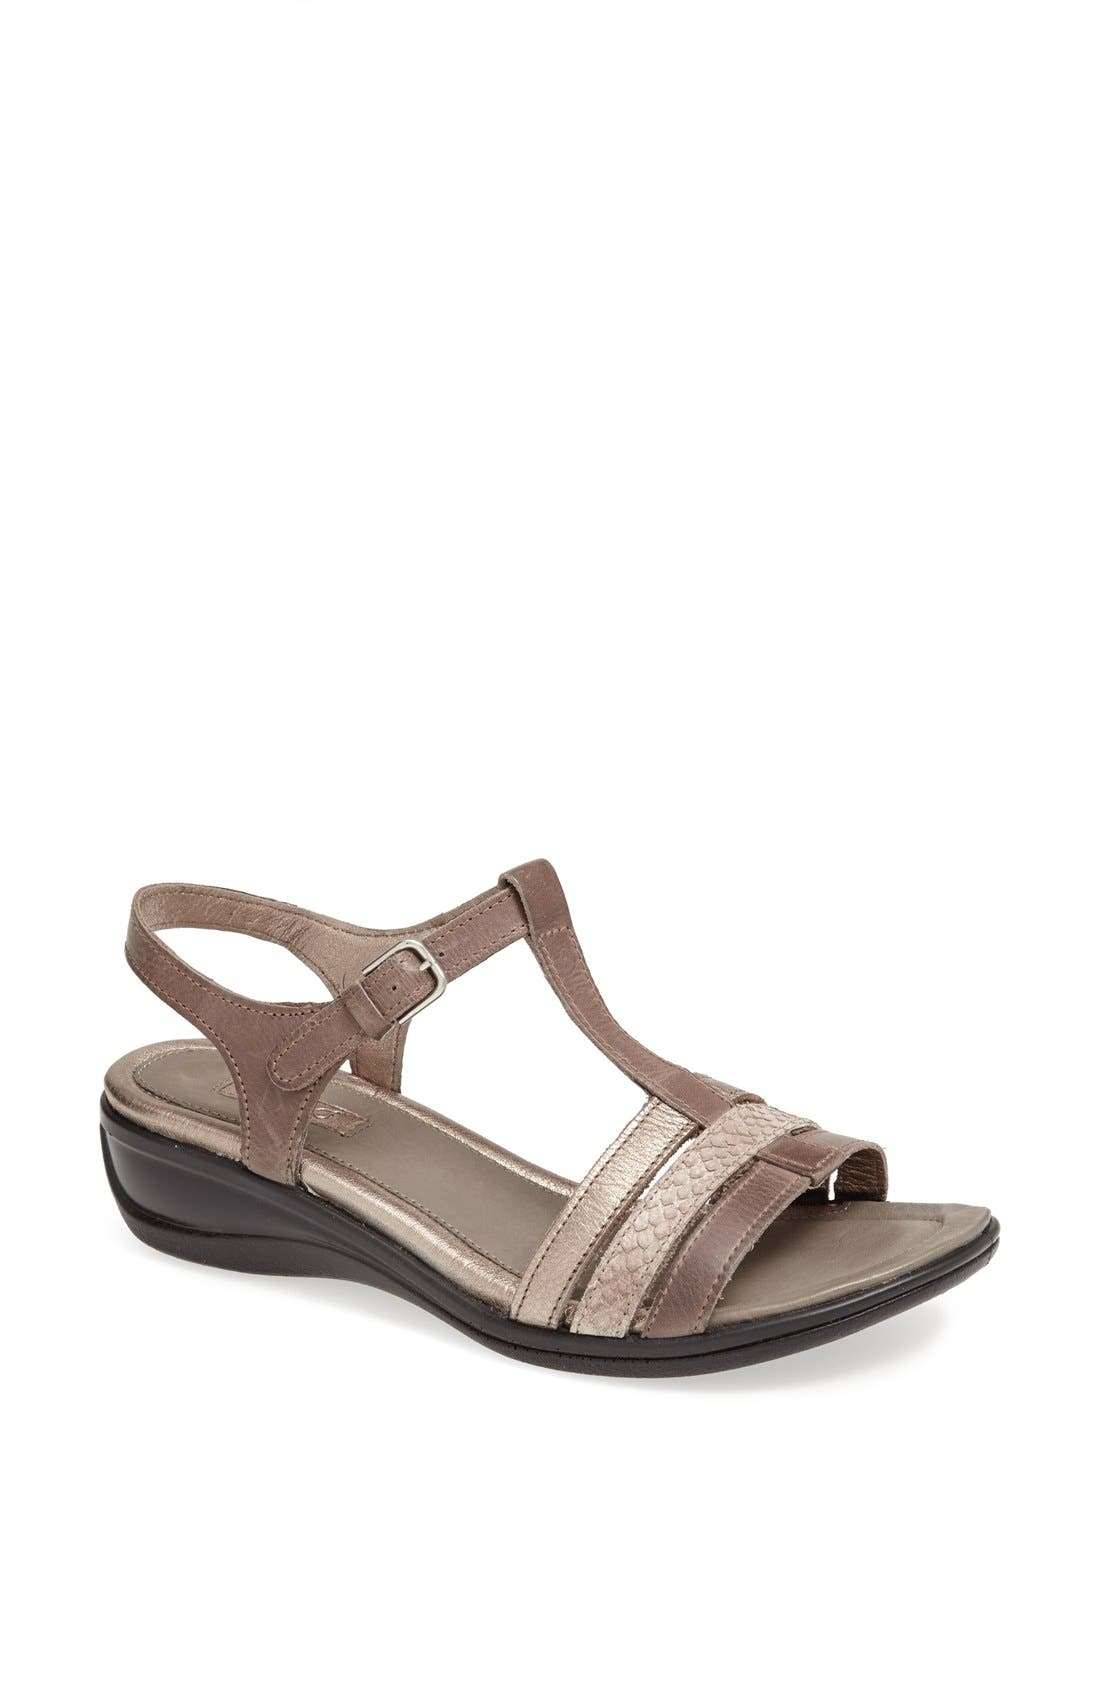 Main Image - ECCO 'Sensata' Sandal (Regular Retail Price: $119.95)